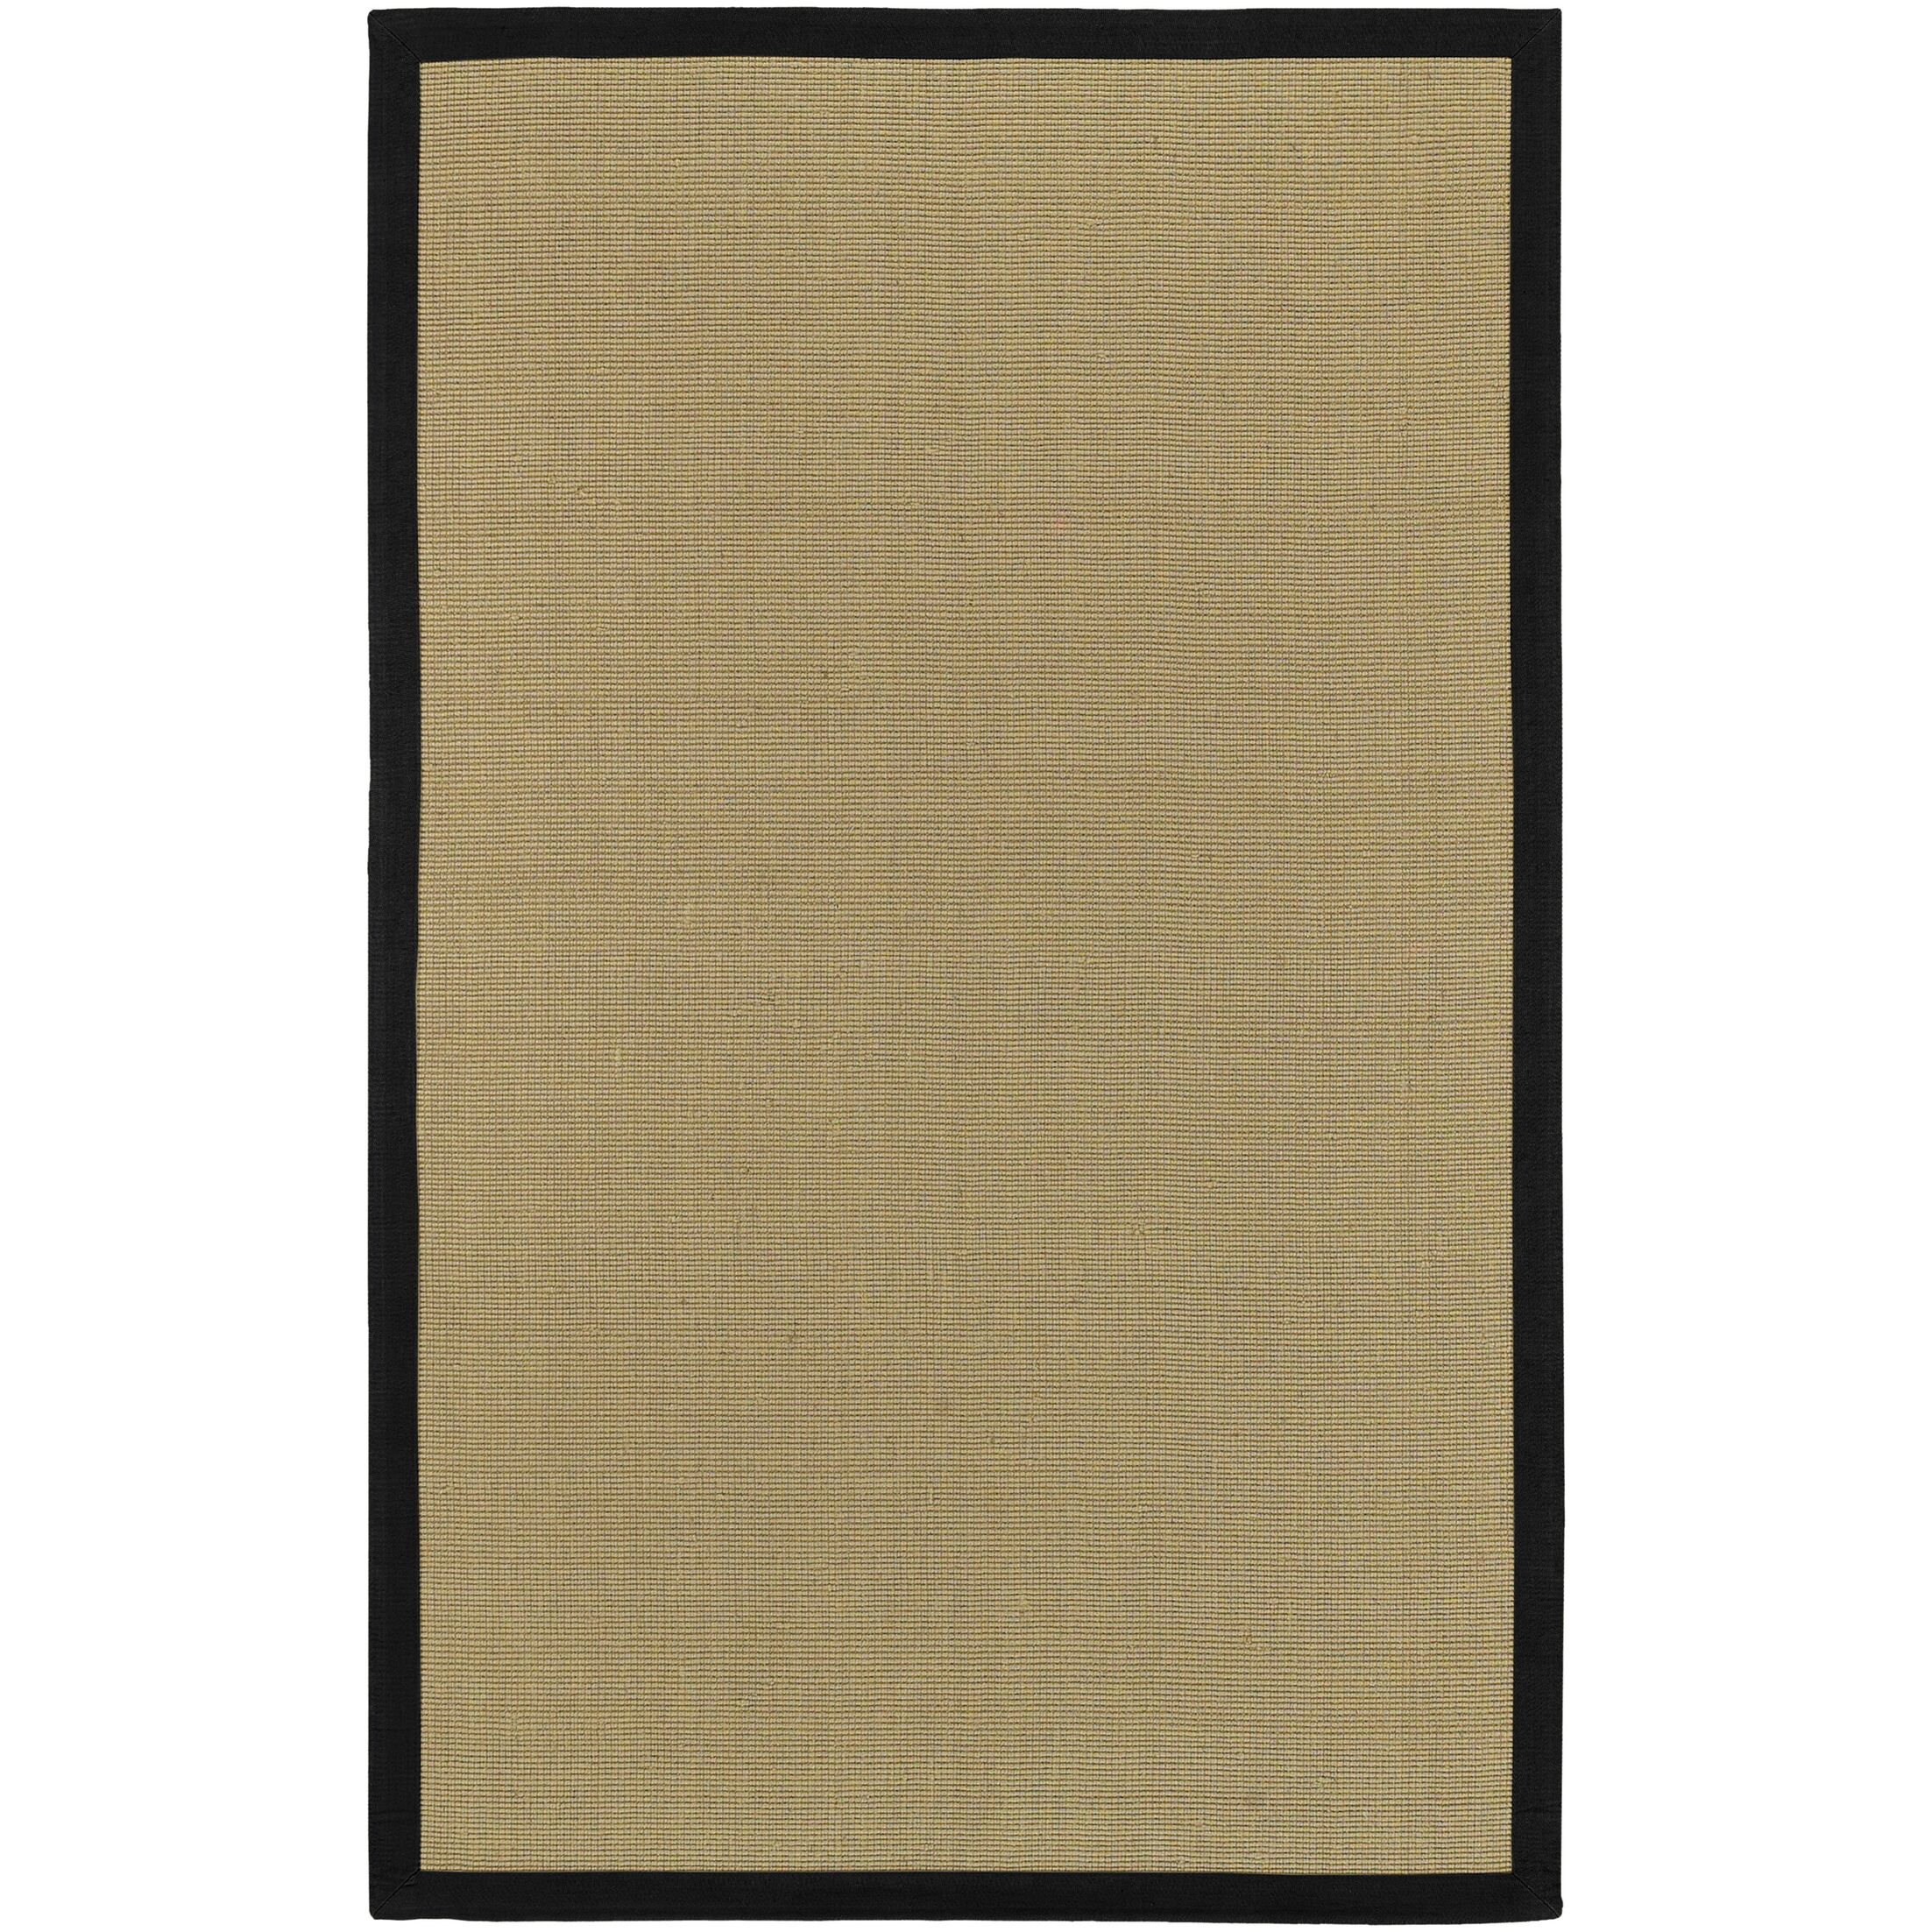 Sasha Hand-Woven Black Jute Area Rug Rug Size: Rectangle 5' x 8'